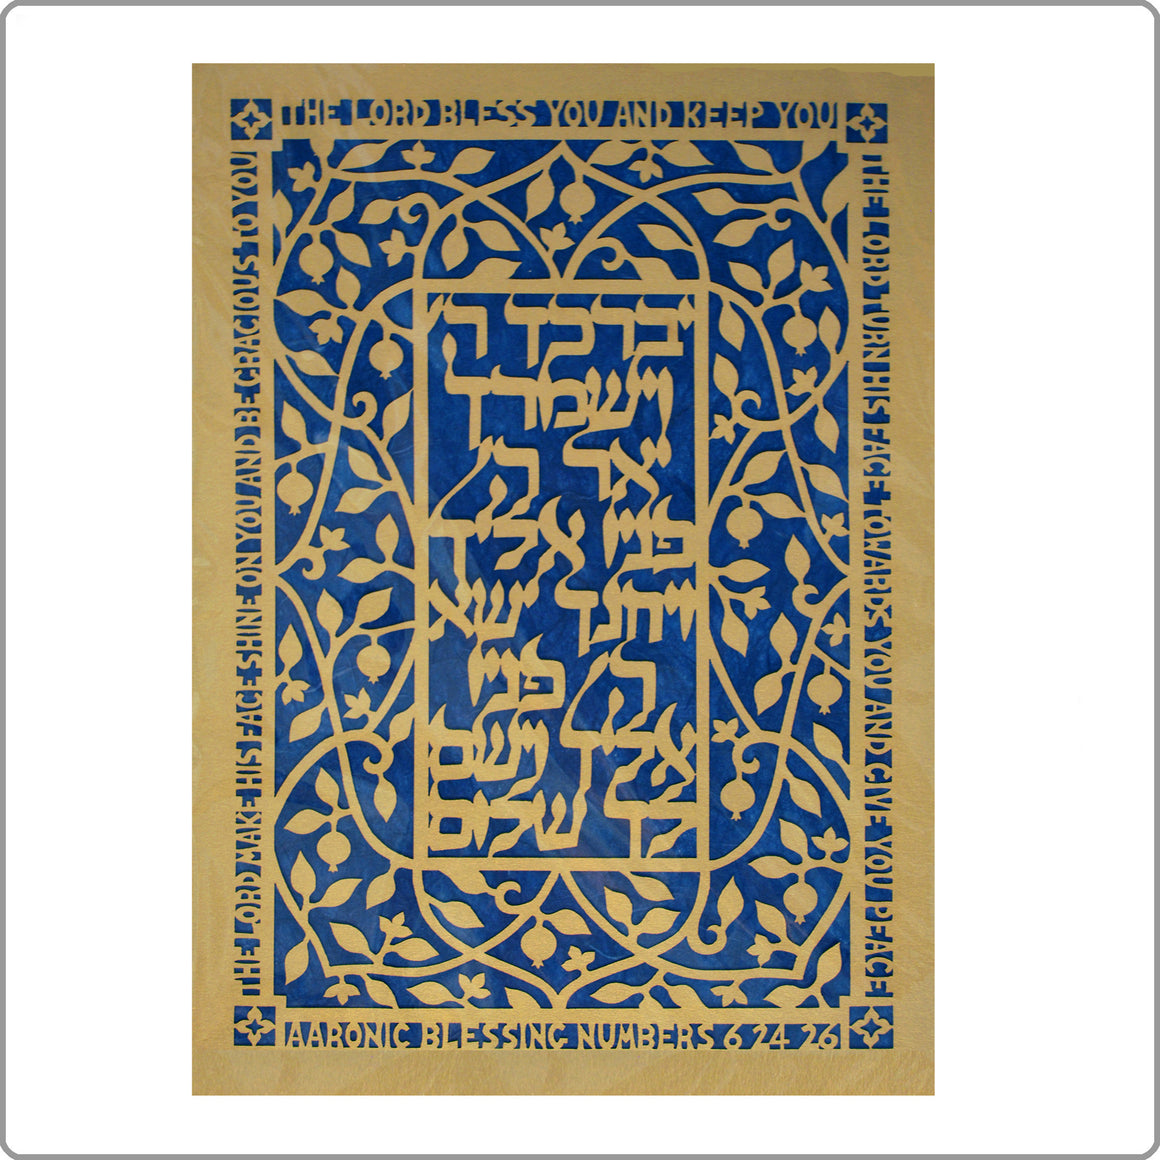 Aaronic blessing - Sephardic tiles - Blue by Grace Alon